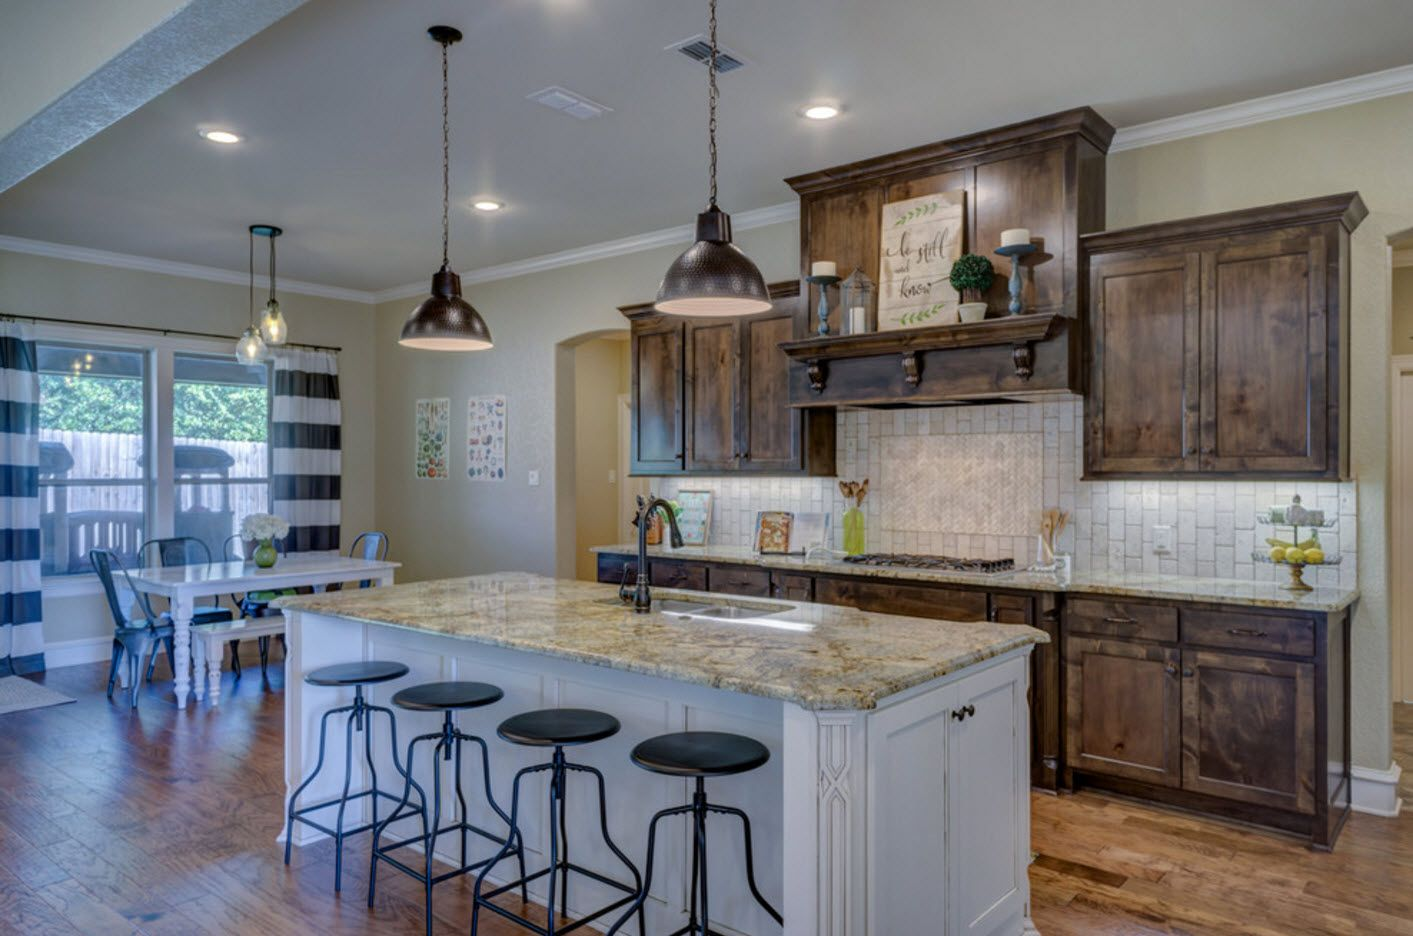 Marble countertop at the Classic style cottage kitchen interior